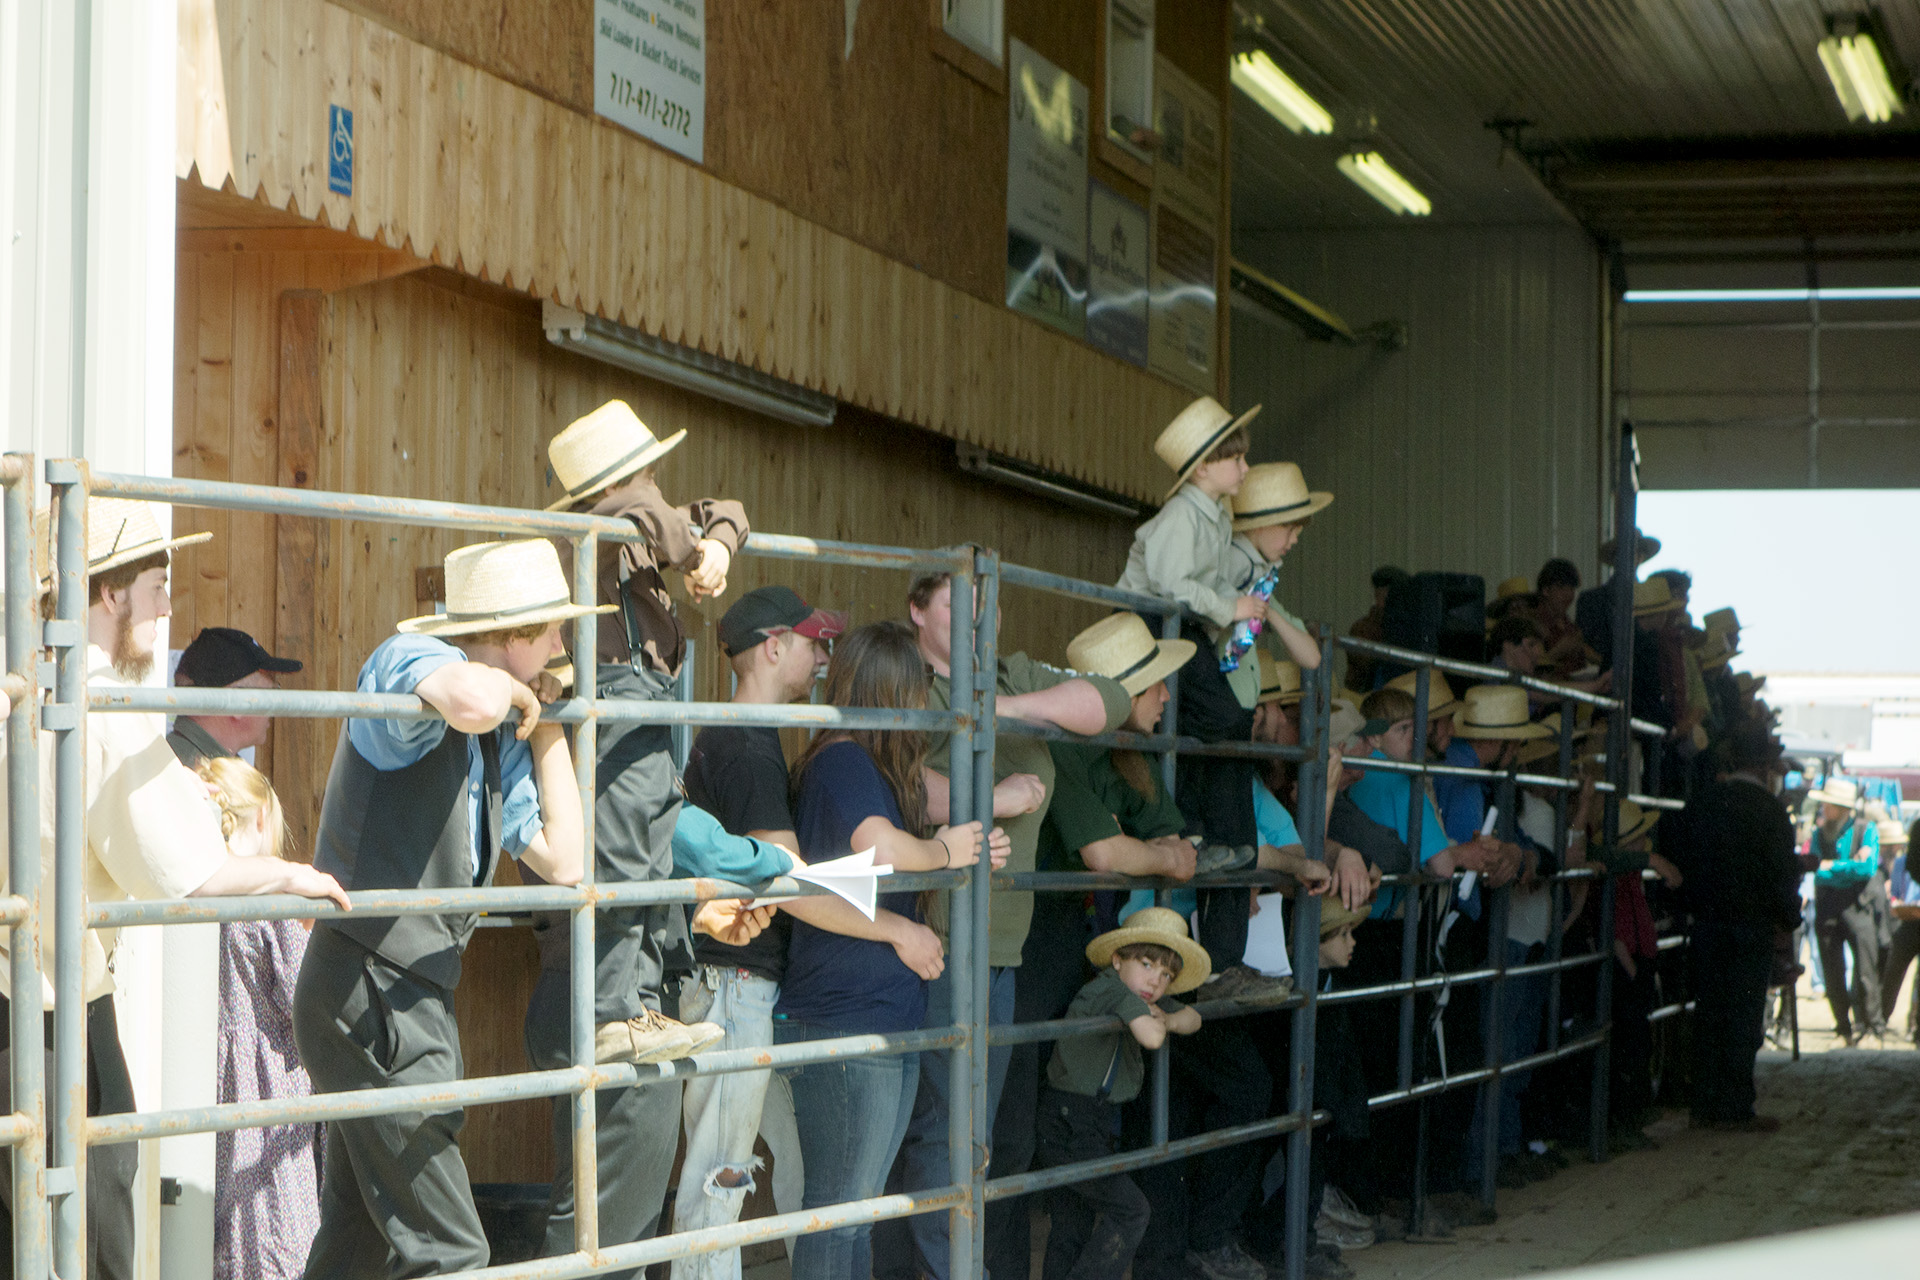 Spectators anxiously awaiting the next horse up for bid.